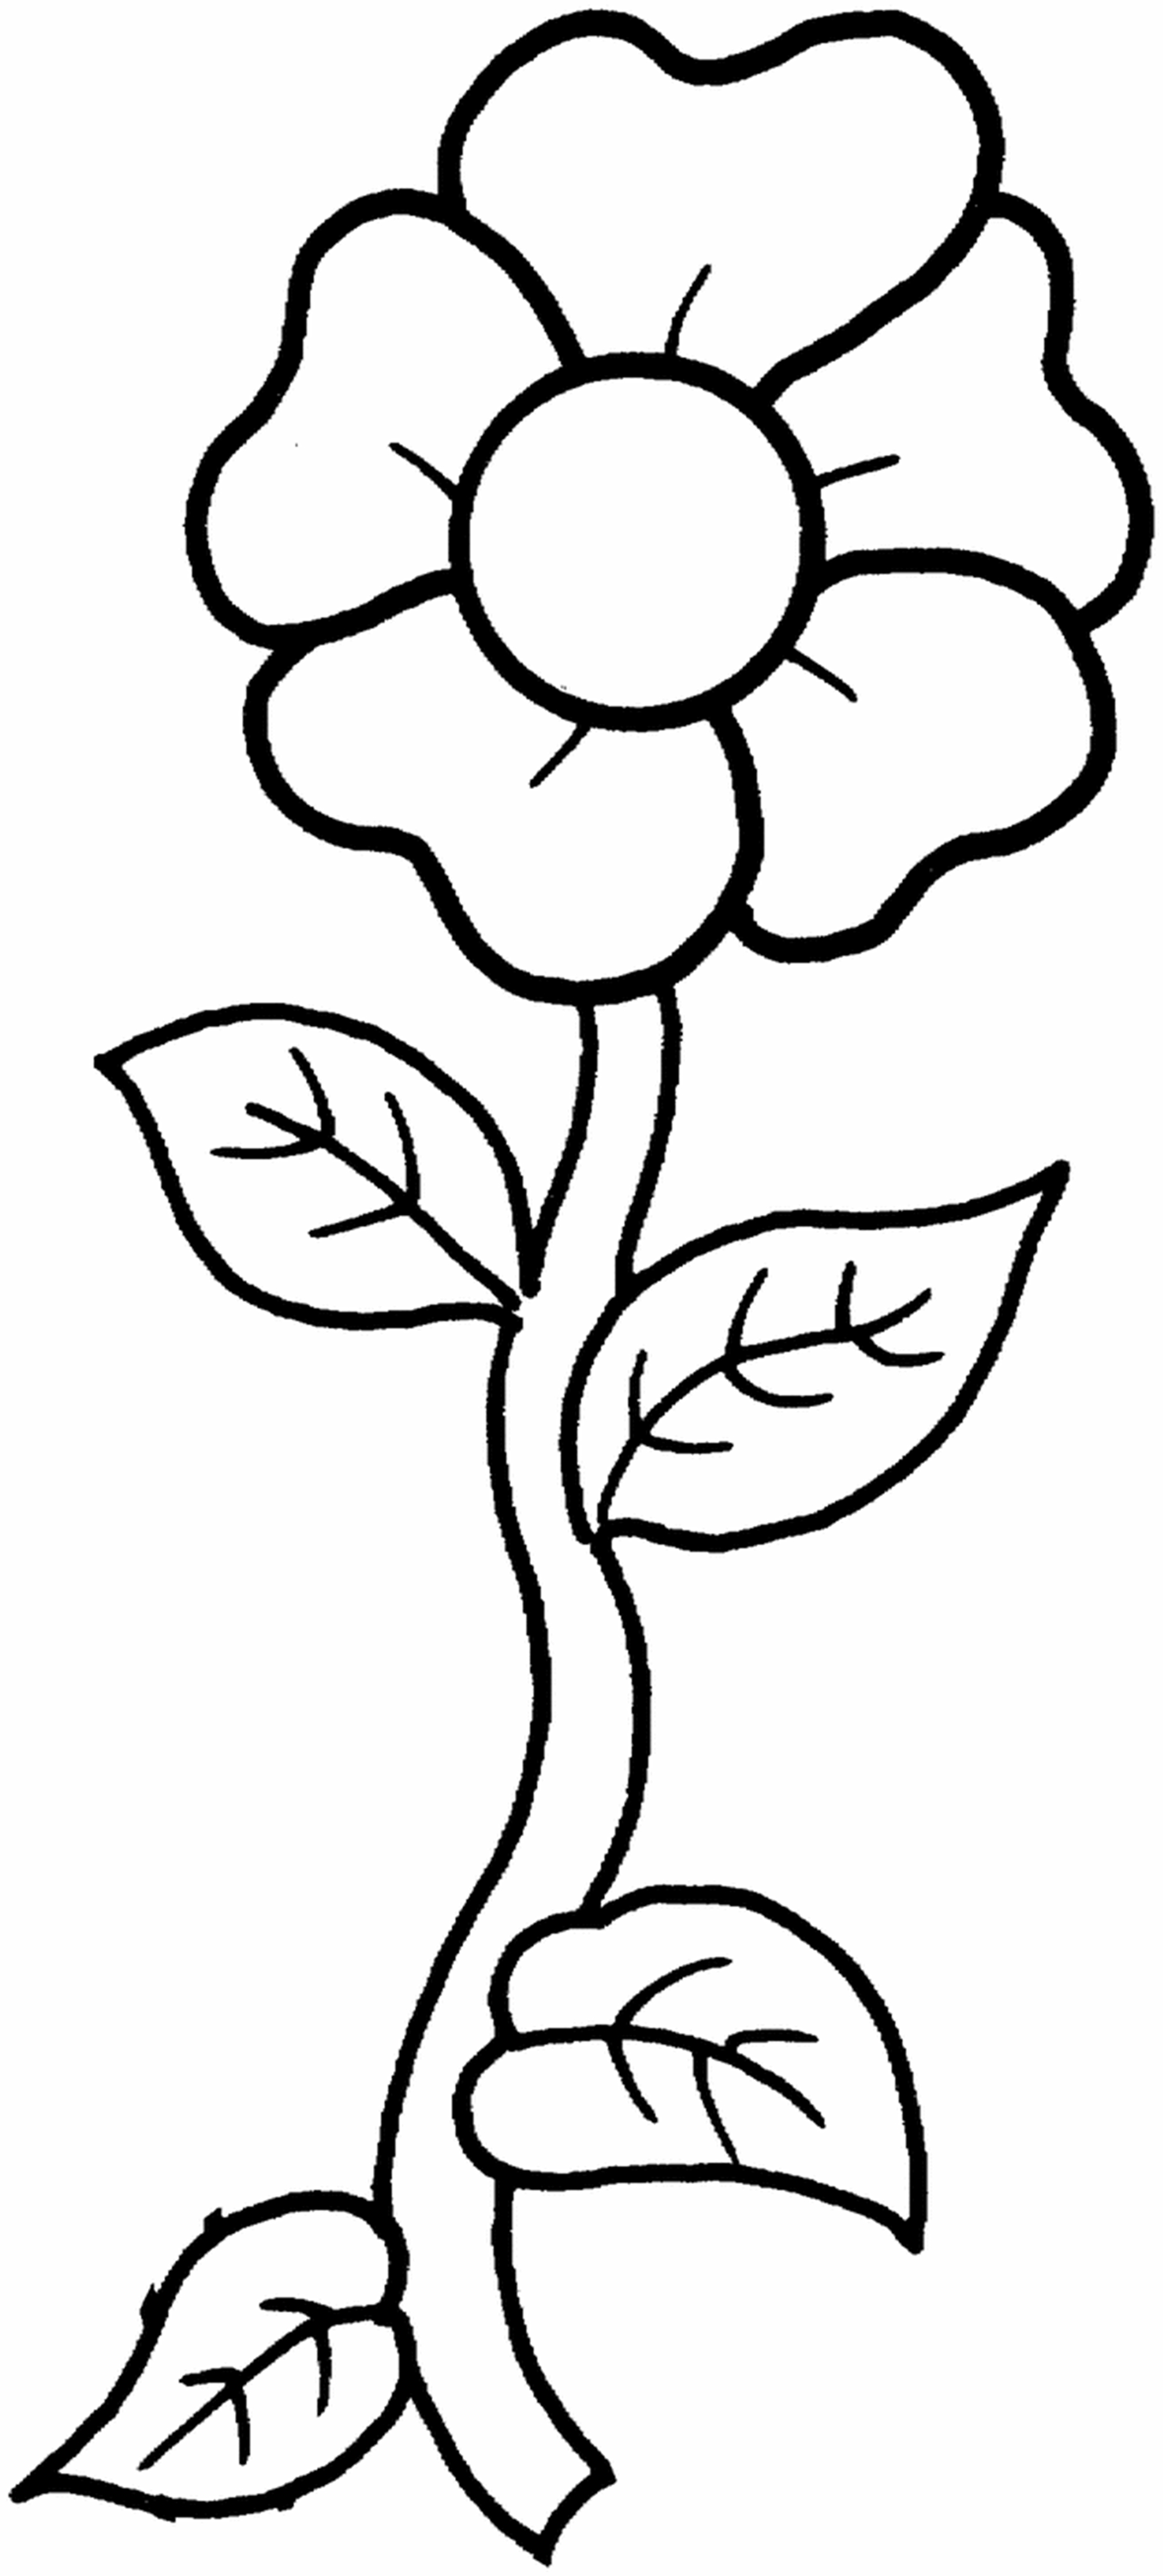 coloring pages for kids flowers free printable flower coloring pages for kids best kids flowers pages for coloring